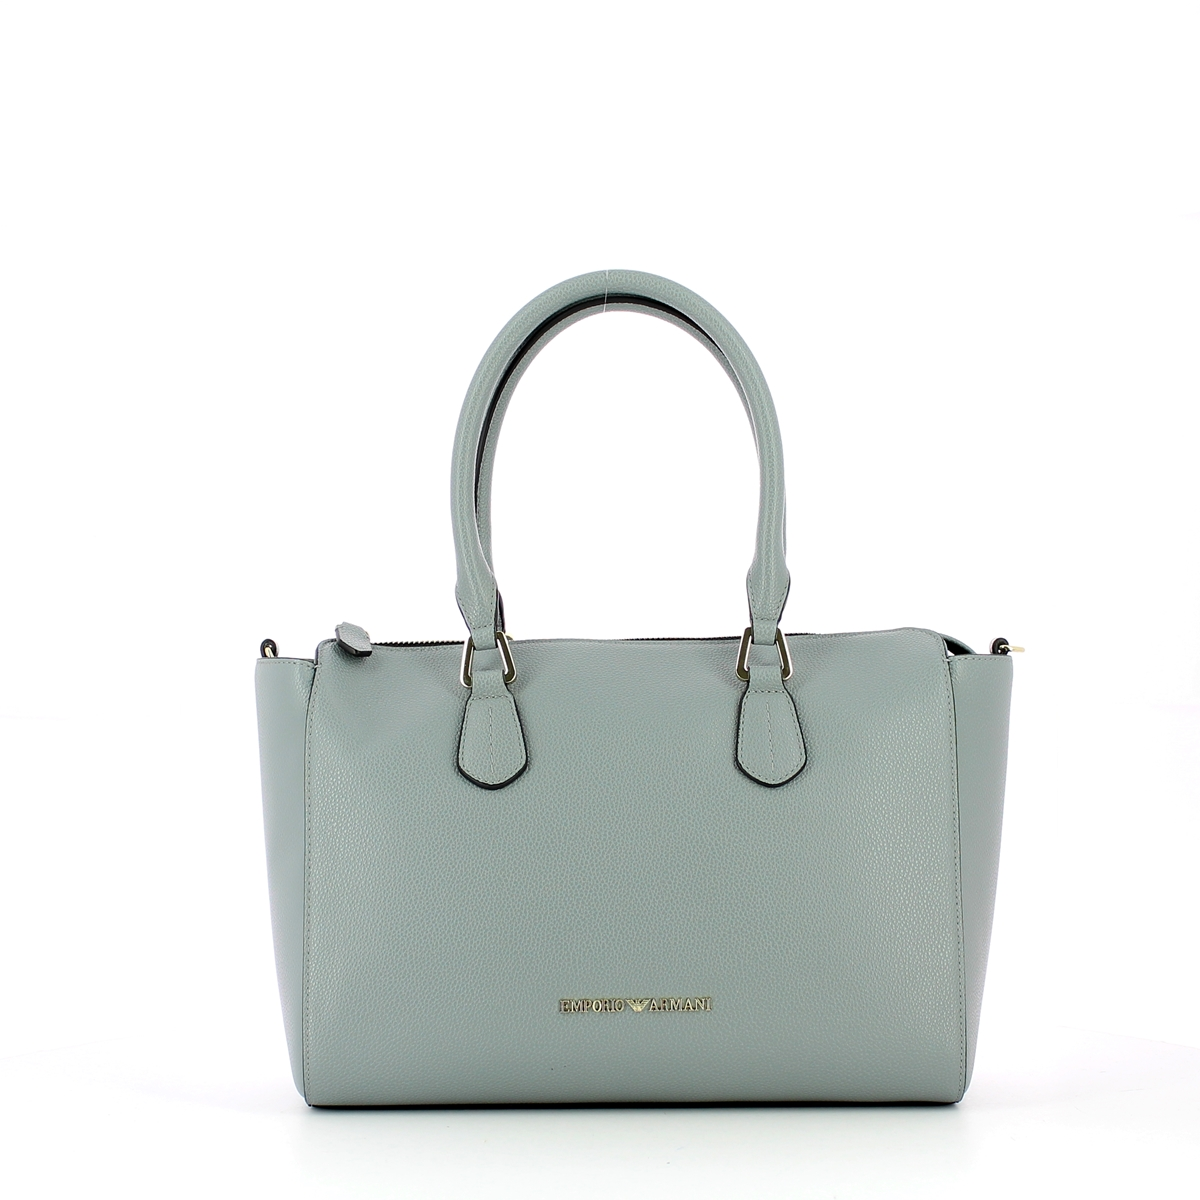 WOMEN'S TOTE BAG 2365290